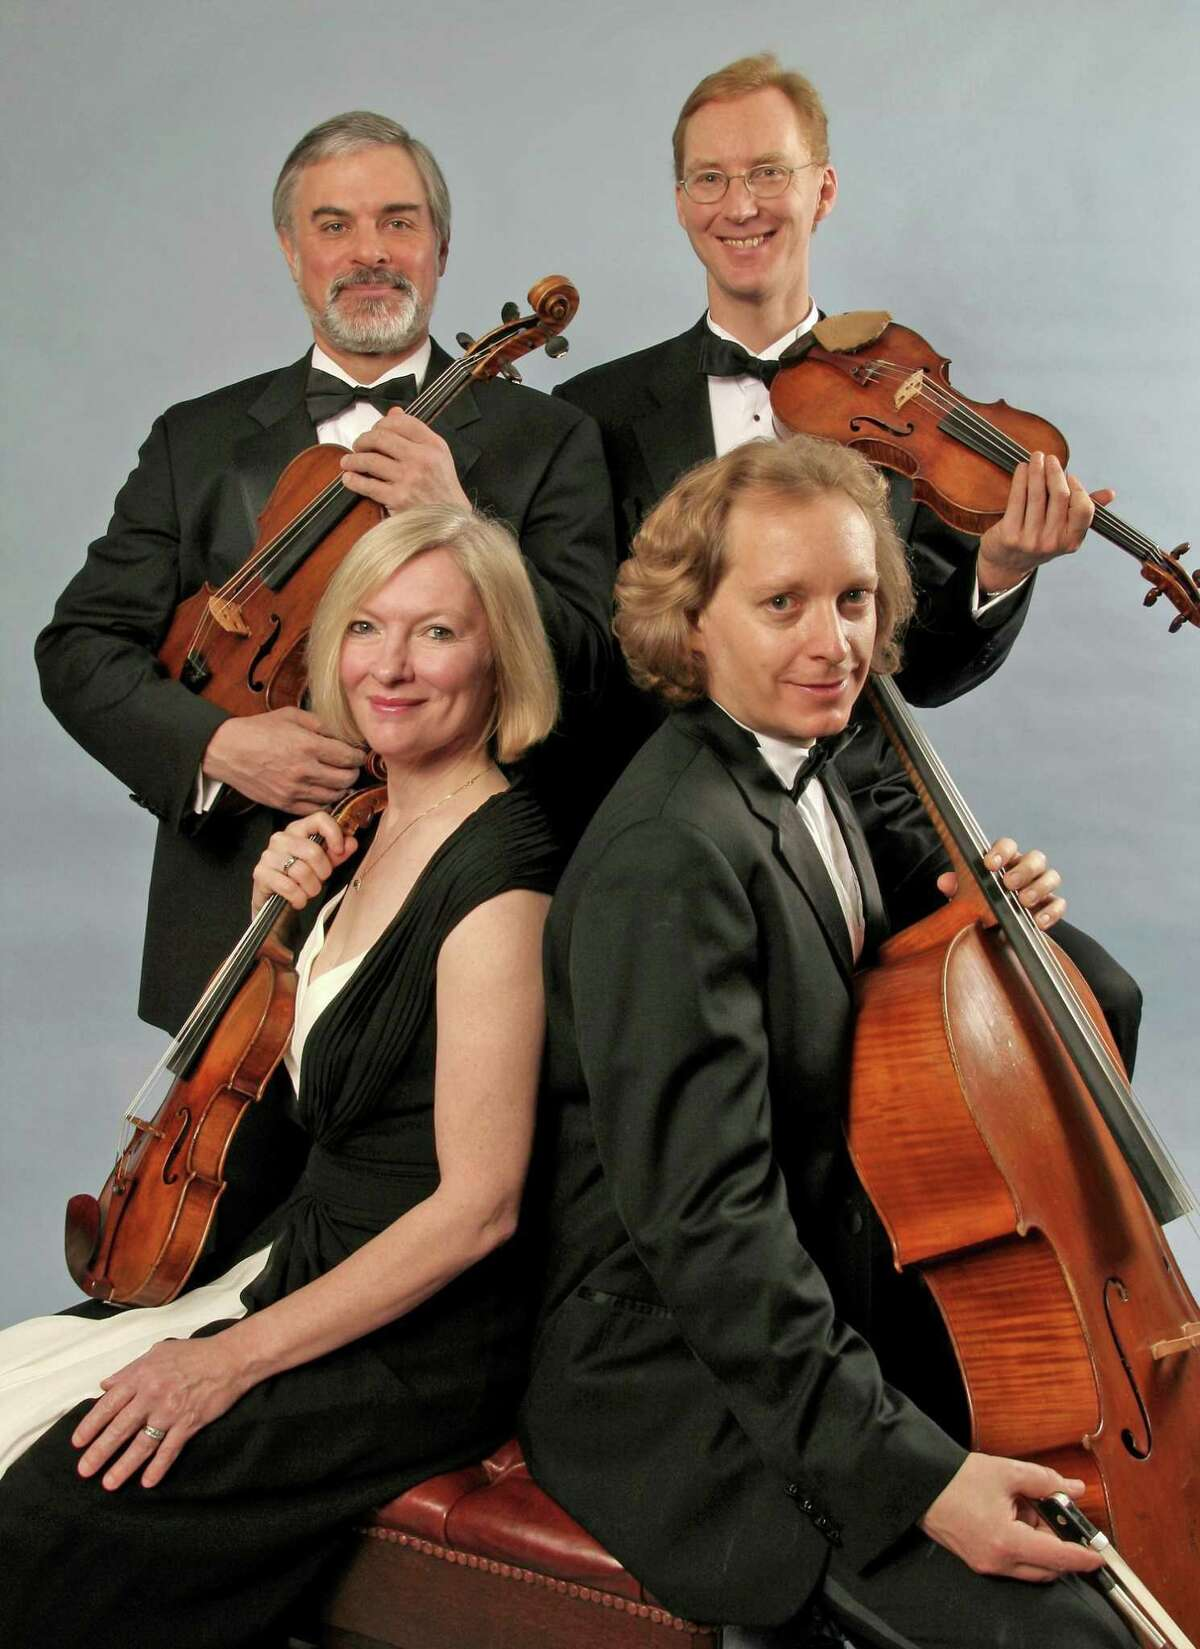 The American String Quartet, clockwise from left, includes Laurie Carney, violin; Daniel Avshalomov, viola; Peter Winograd, violin; and Wolfram Koessel, cello.